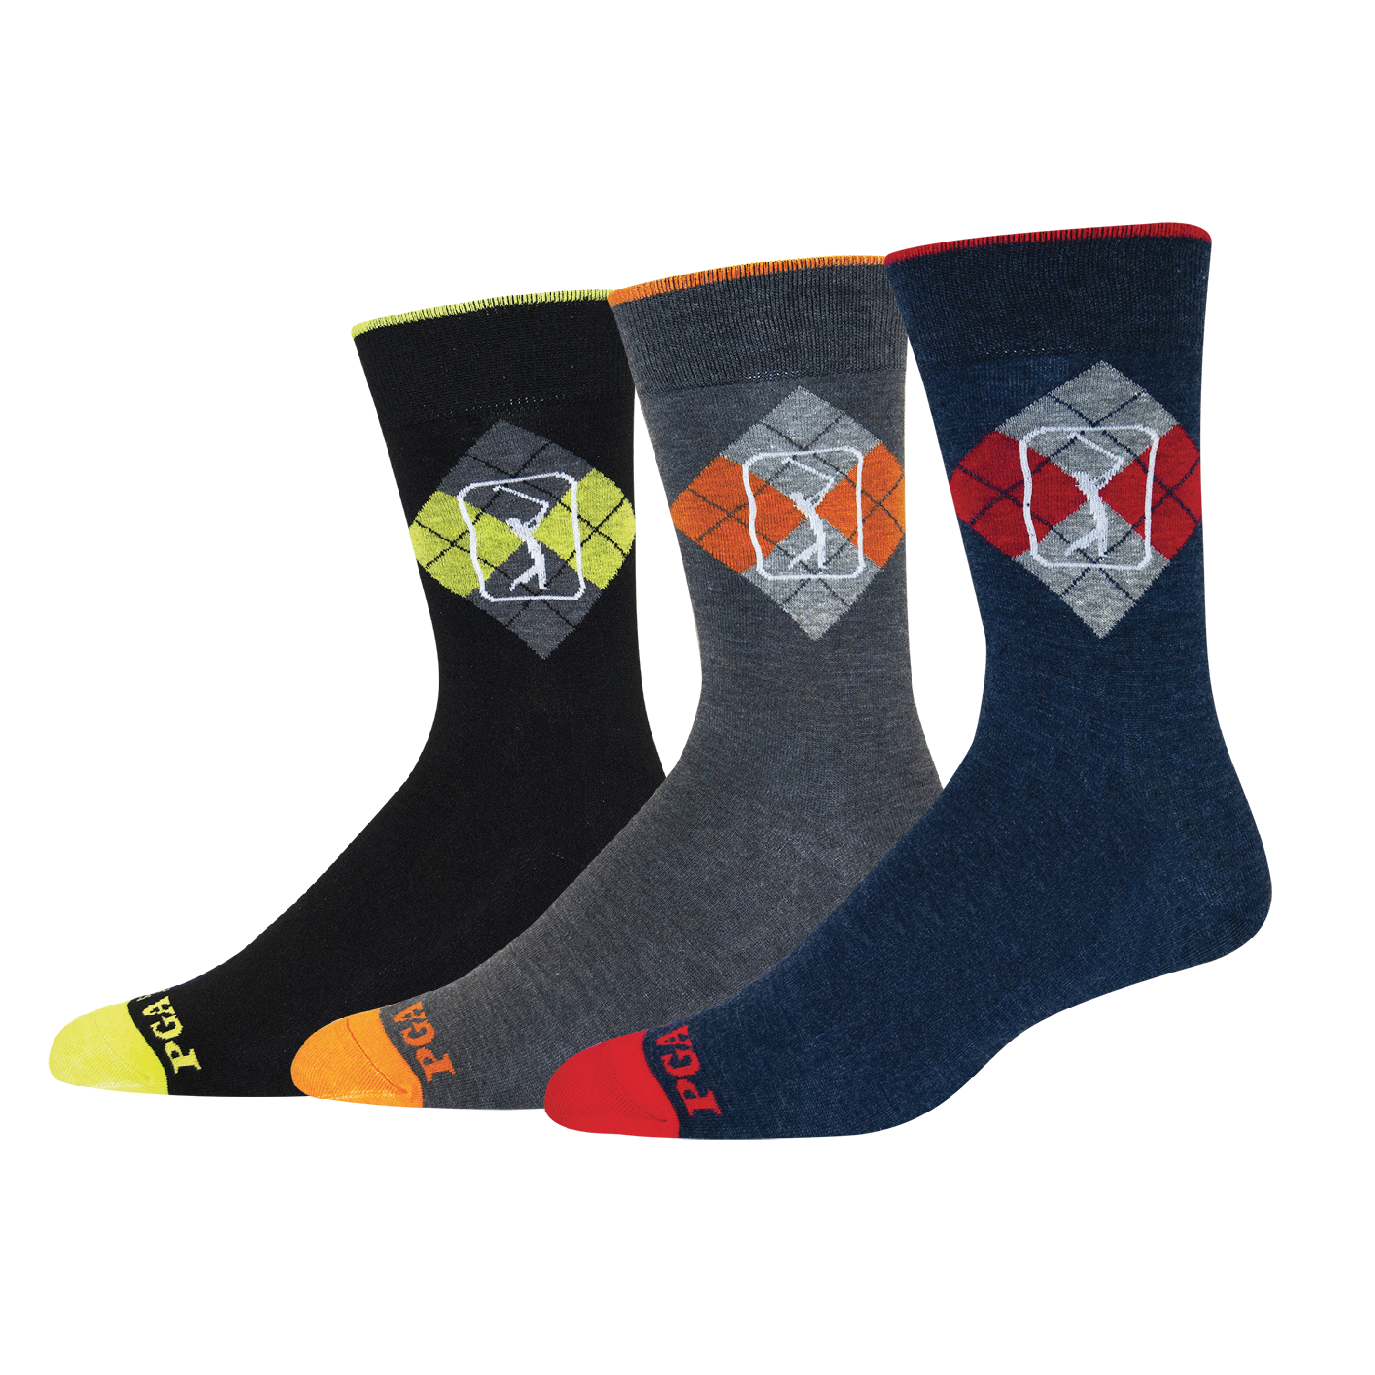 MENS ARGYLE & LOGO CREW SOCKS